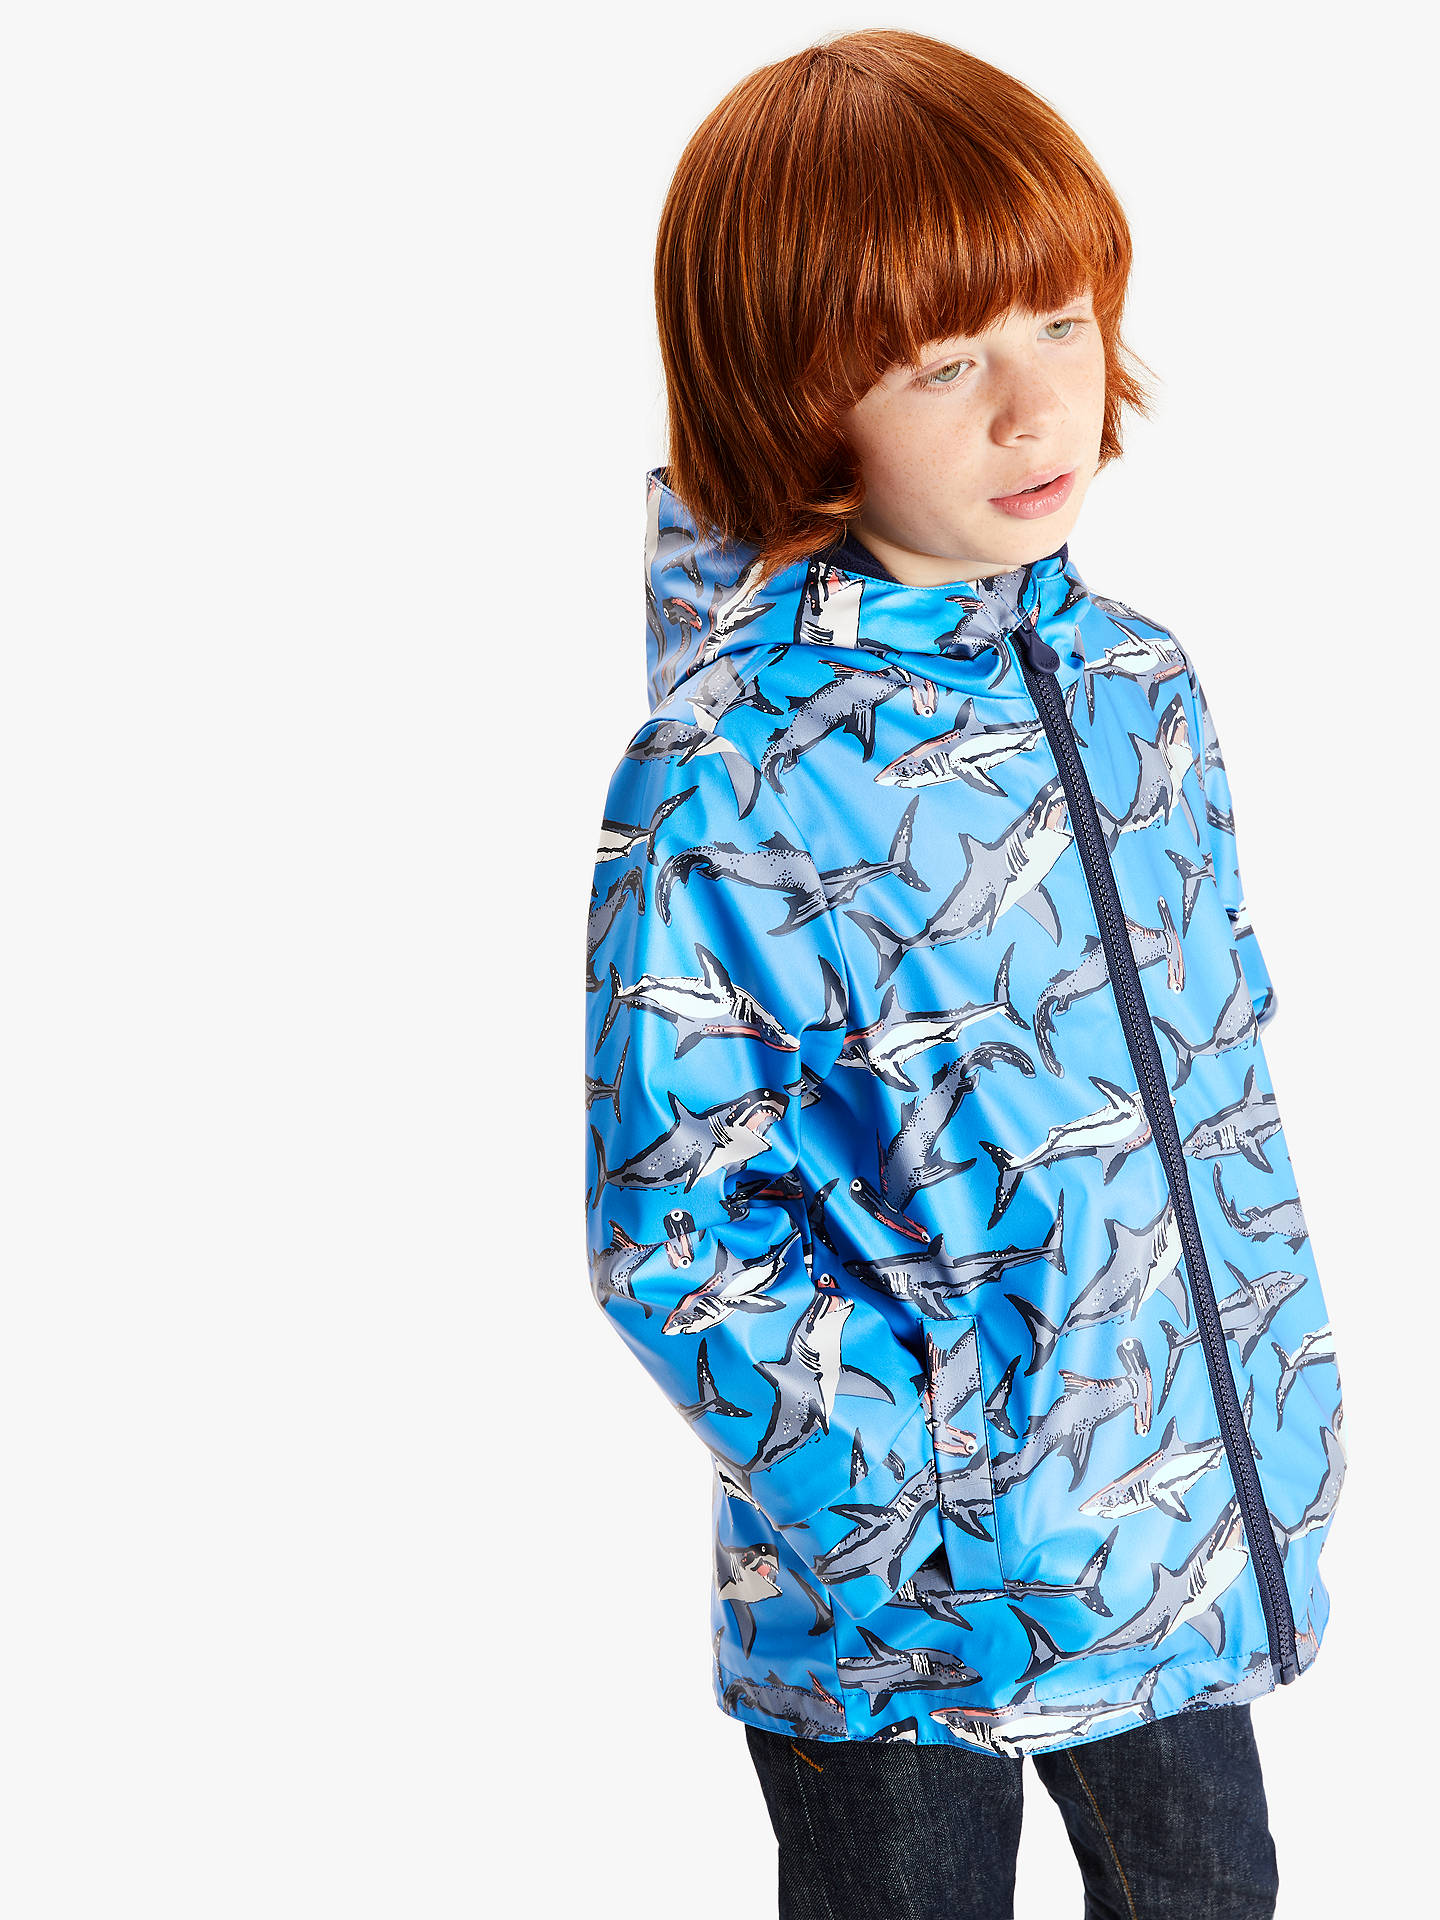 new styles promo code find workmanship Little Joule Boys' Shark Print Raincoat, Blue at John Lewis ...